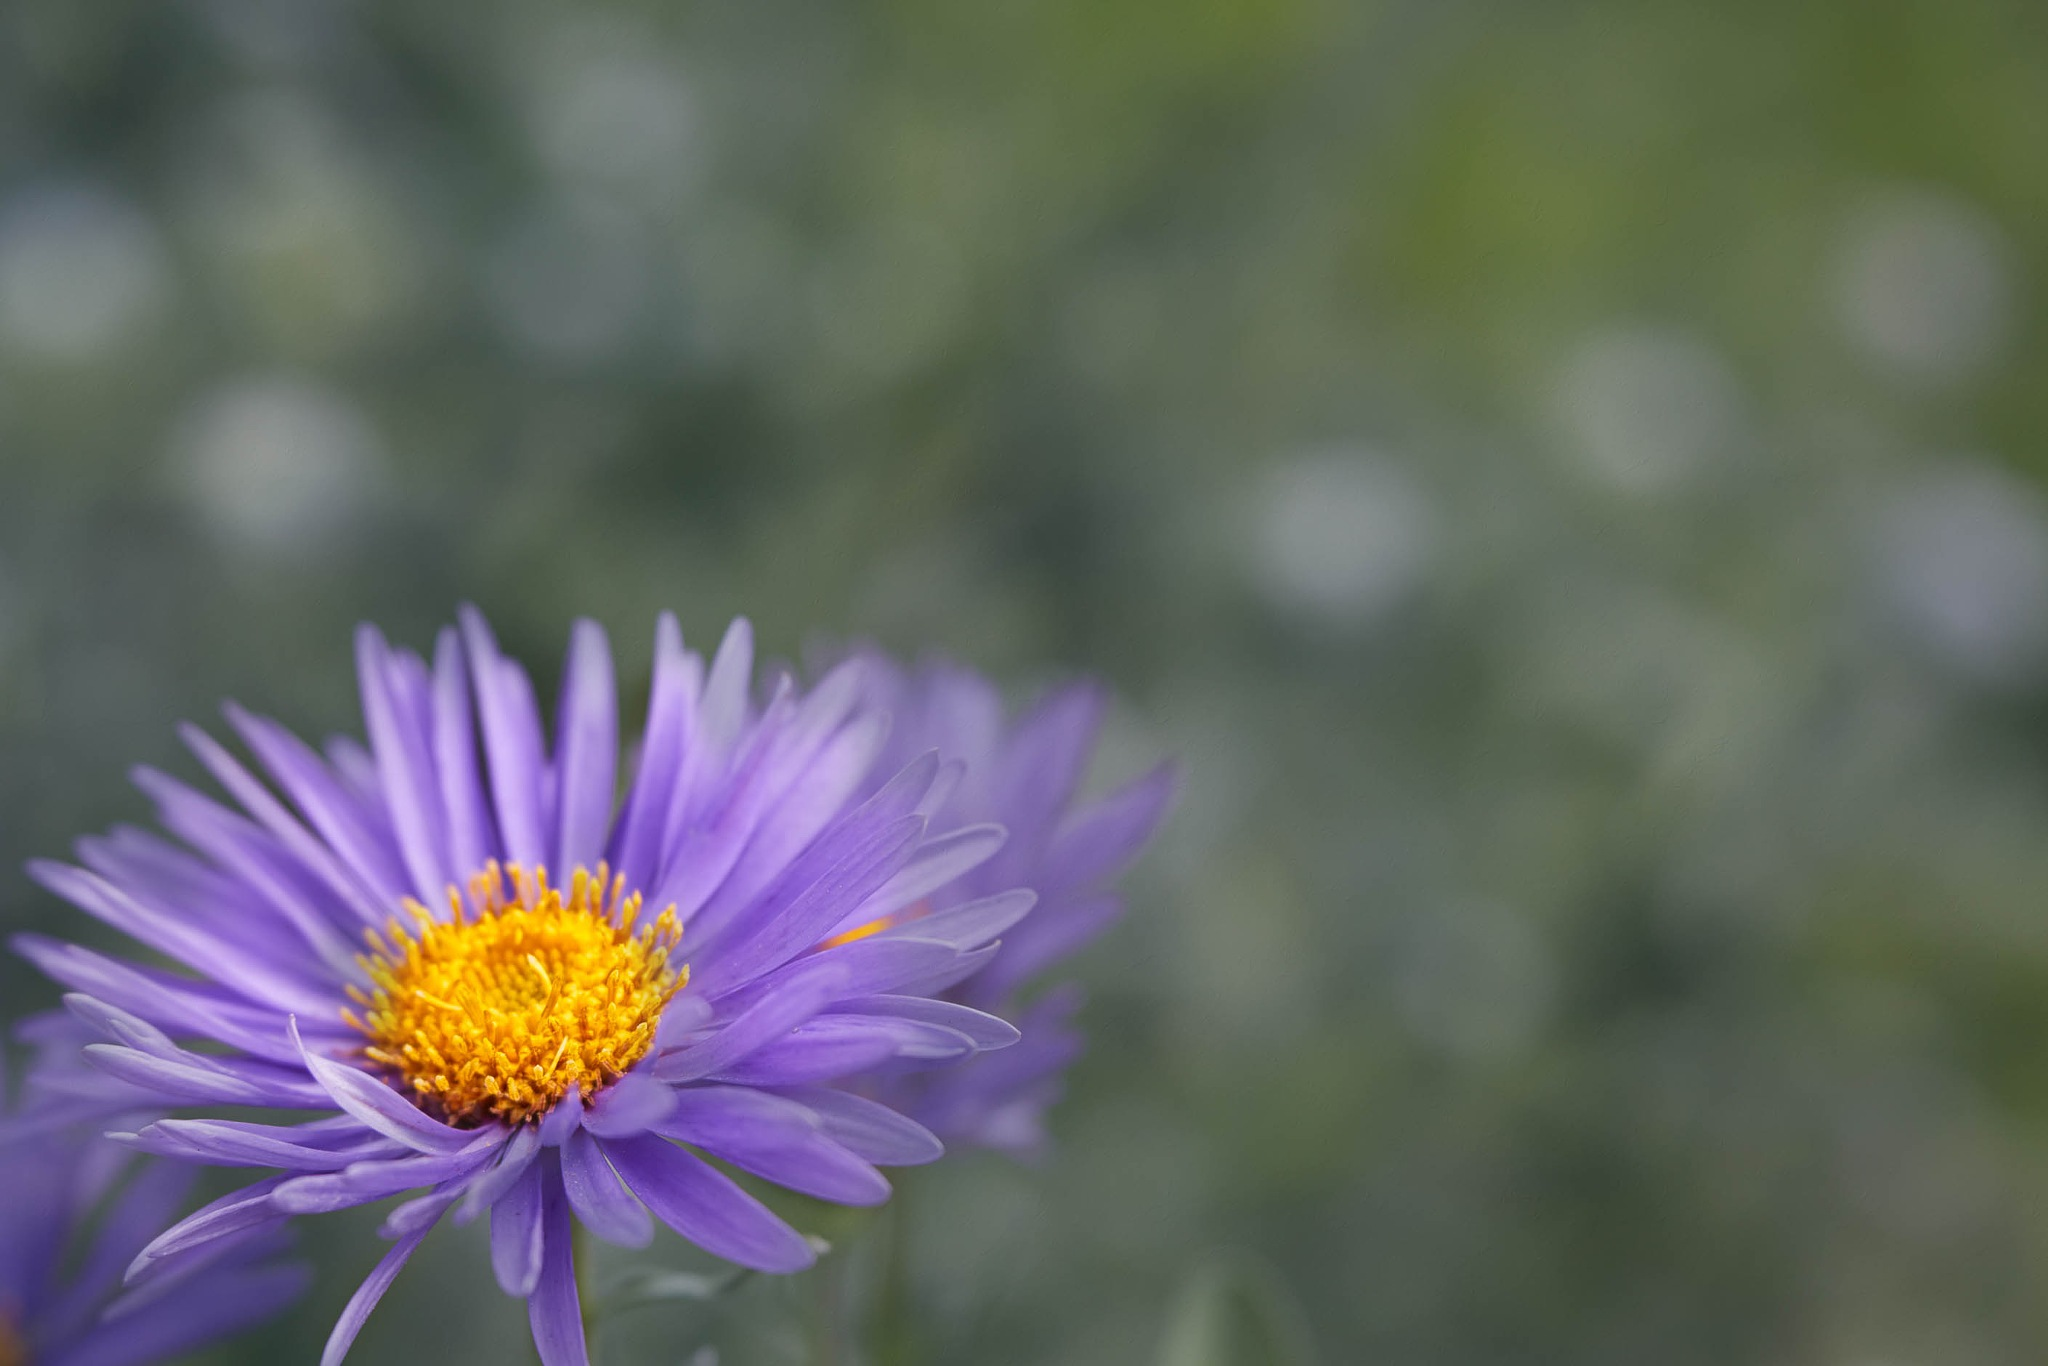 Aster by cenk sarvan